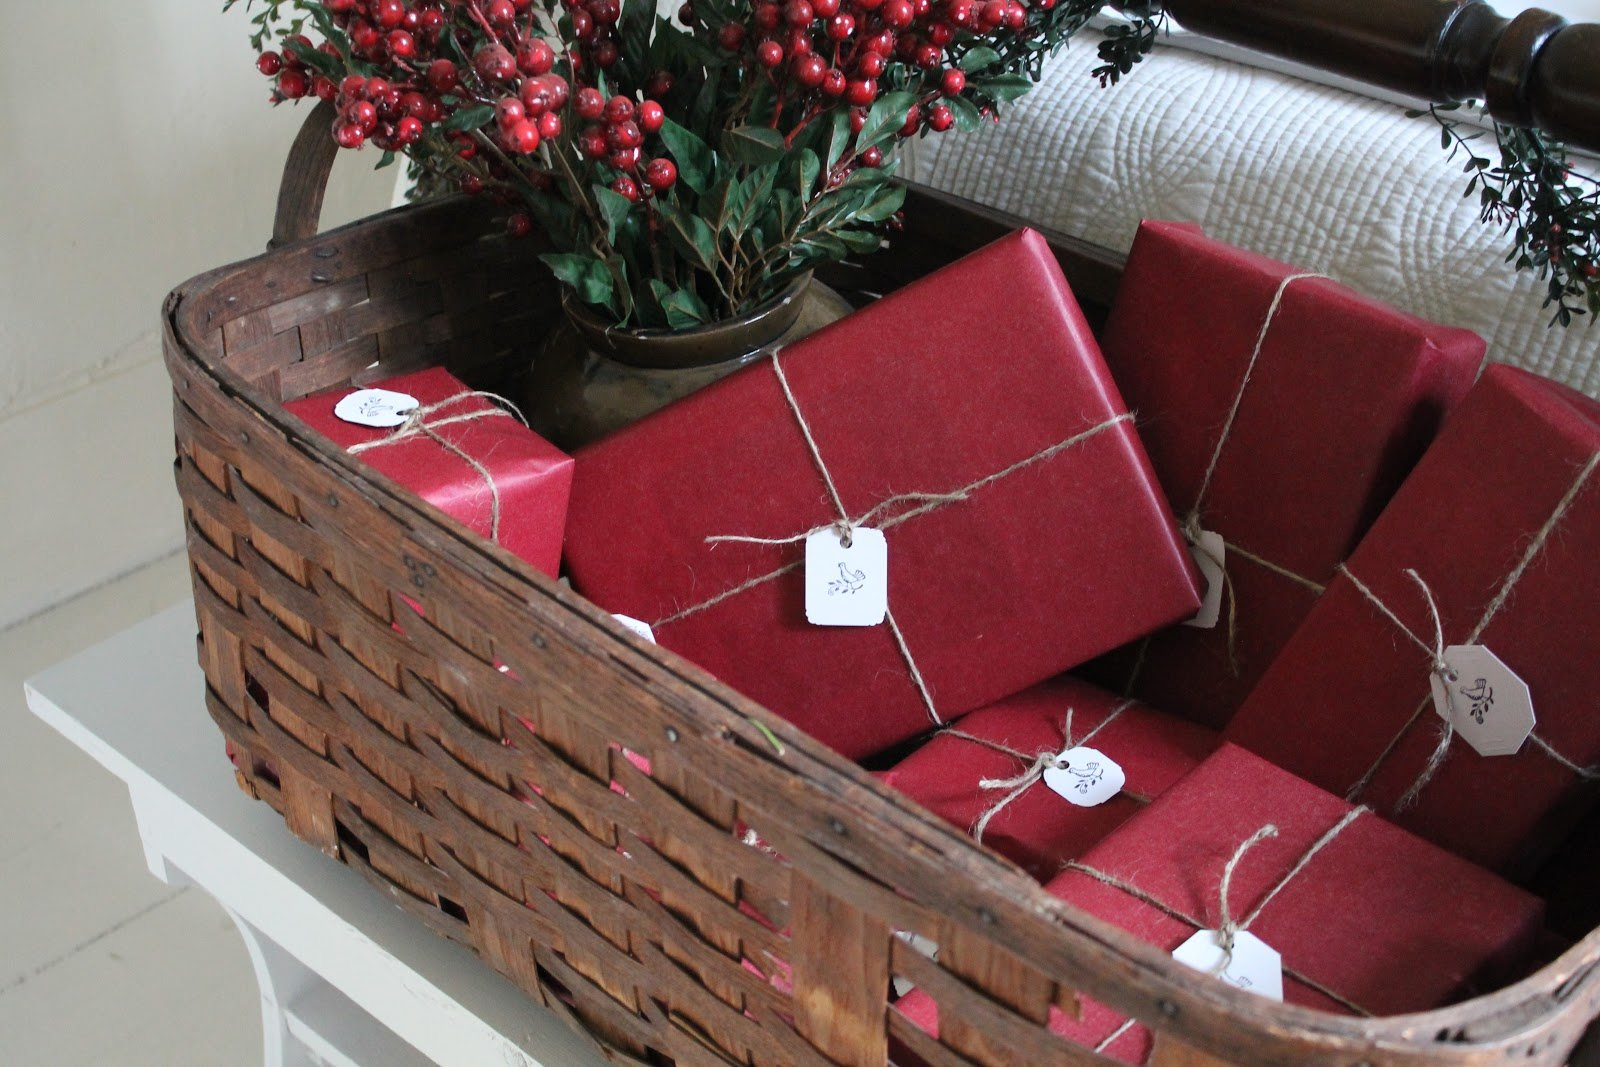 Dark wicker basket containing presents in red wrapping paper and a jar of cranberry branches